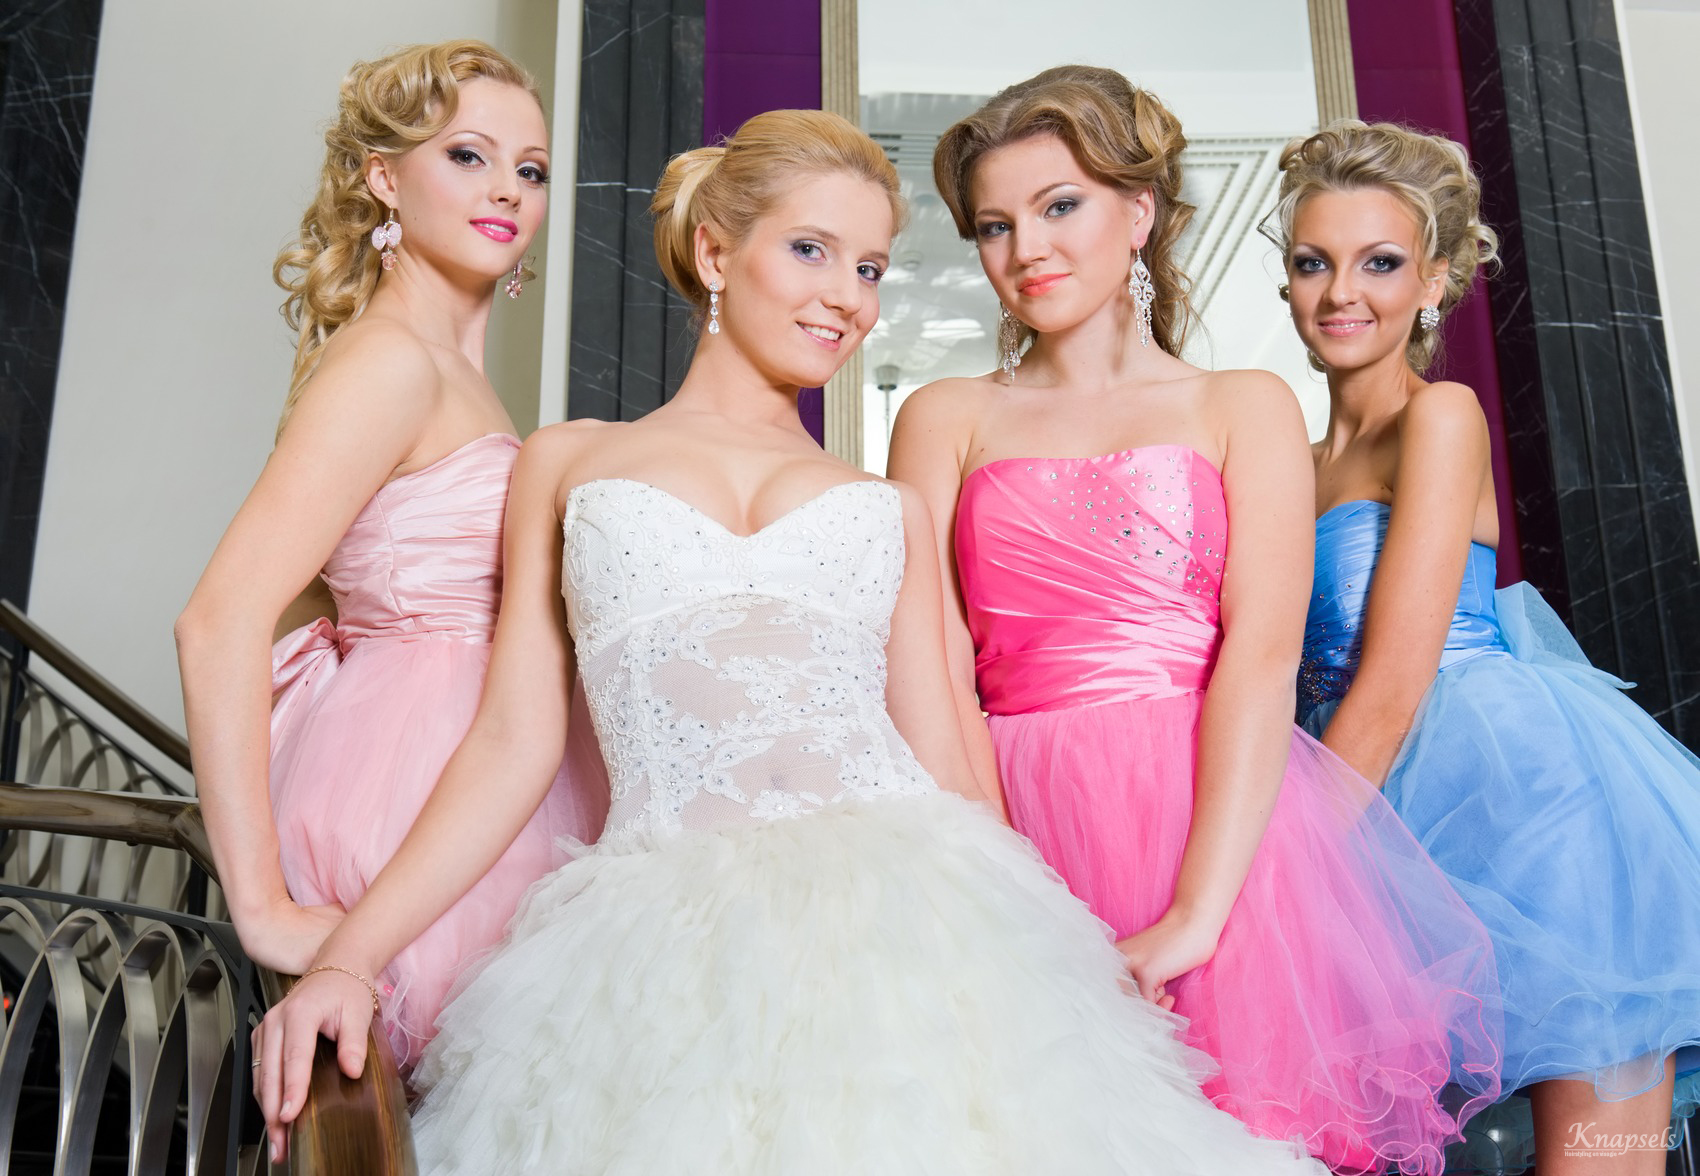 knapsels-the-bride-with-her-bridesmaids-on-the-stairs-m